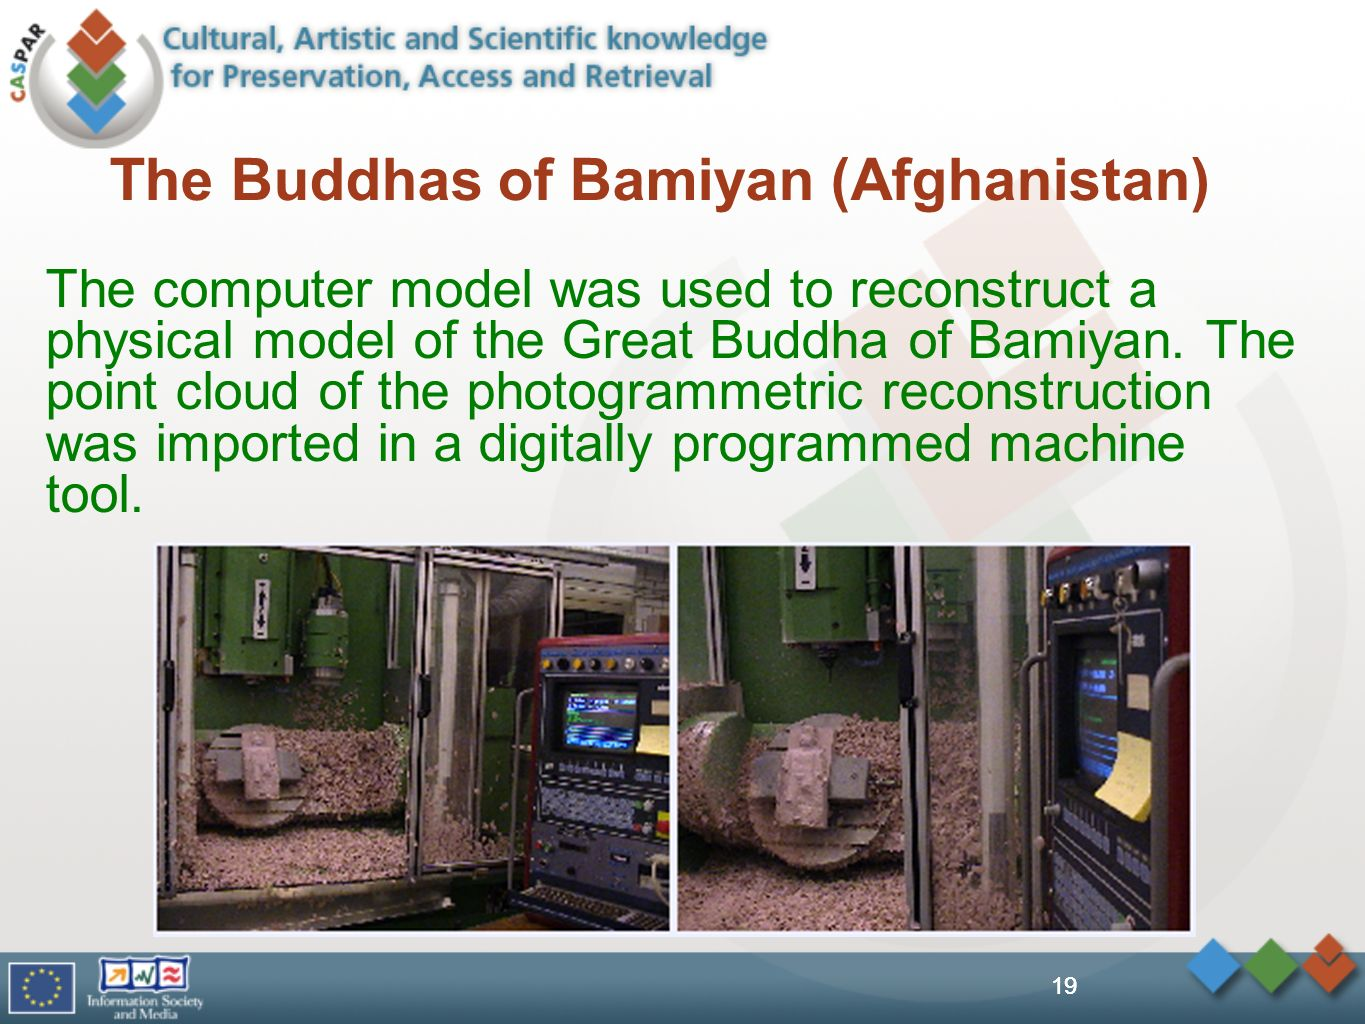 19 The Buddhas of Bamiyan (Afghanistan) The computer model was used to reconstruct a physical model of the Great Buddha of Bamiyan. The point cloud of